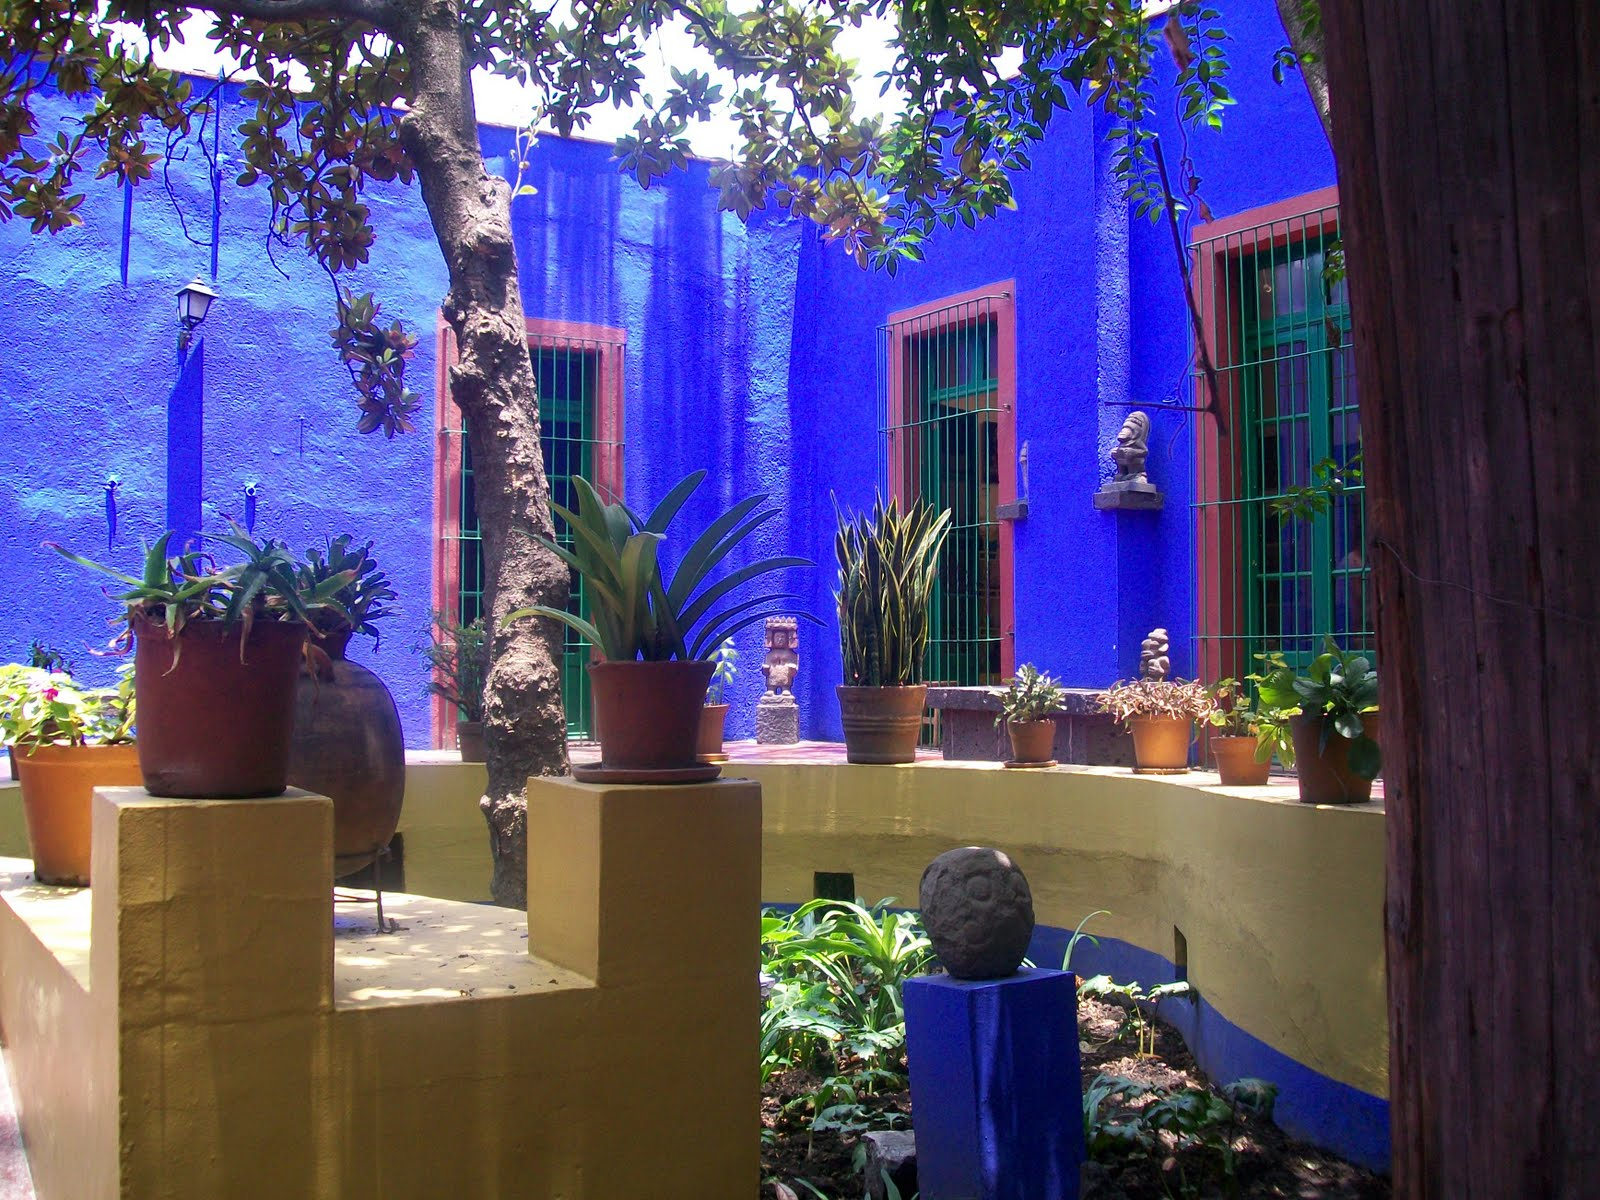 Being able to visit Frida Kahlos house was the spiritually uplifting